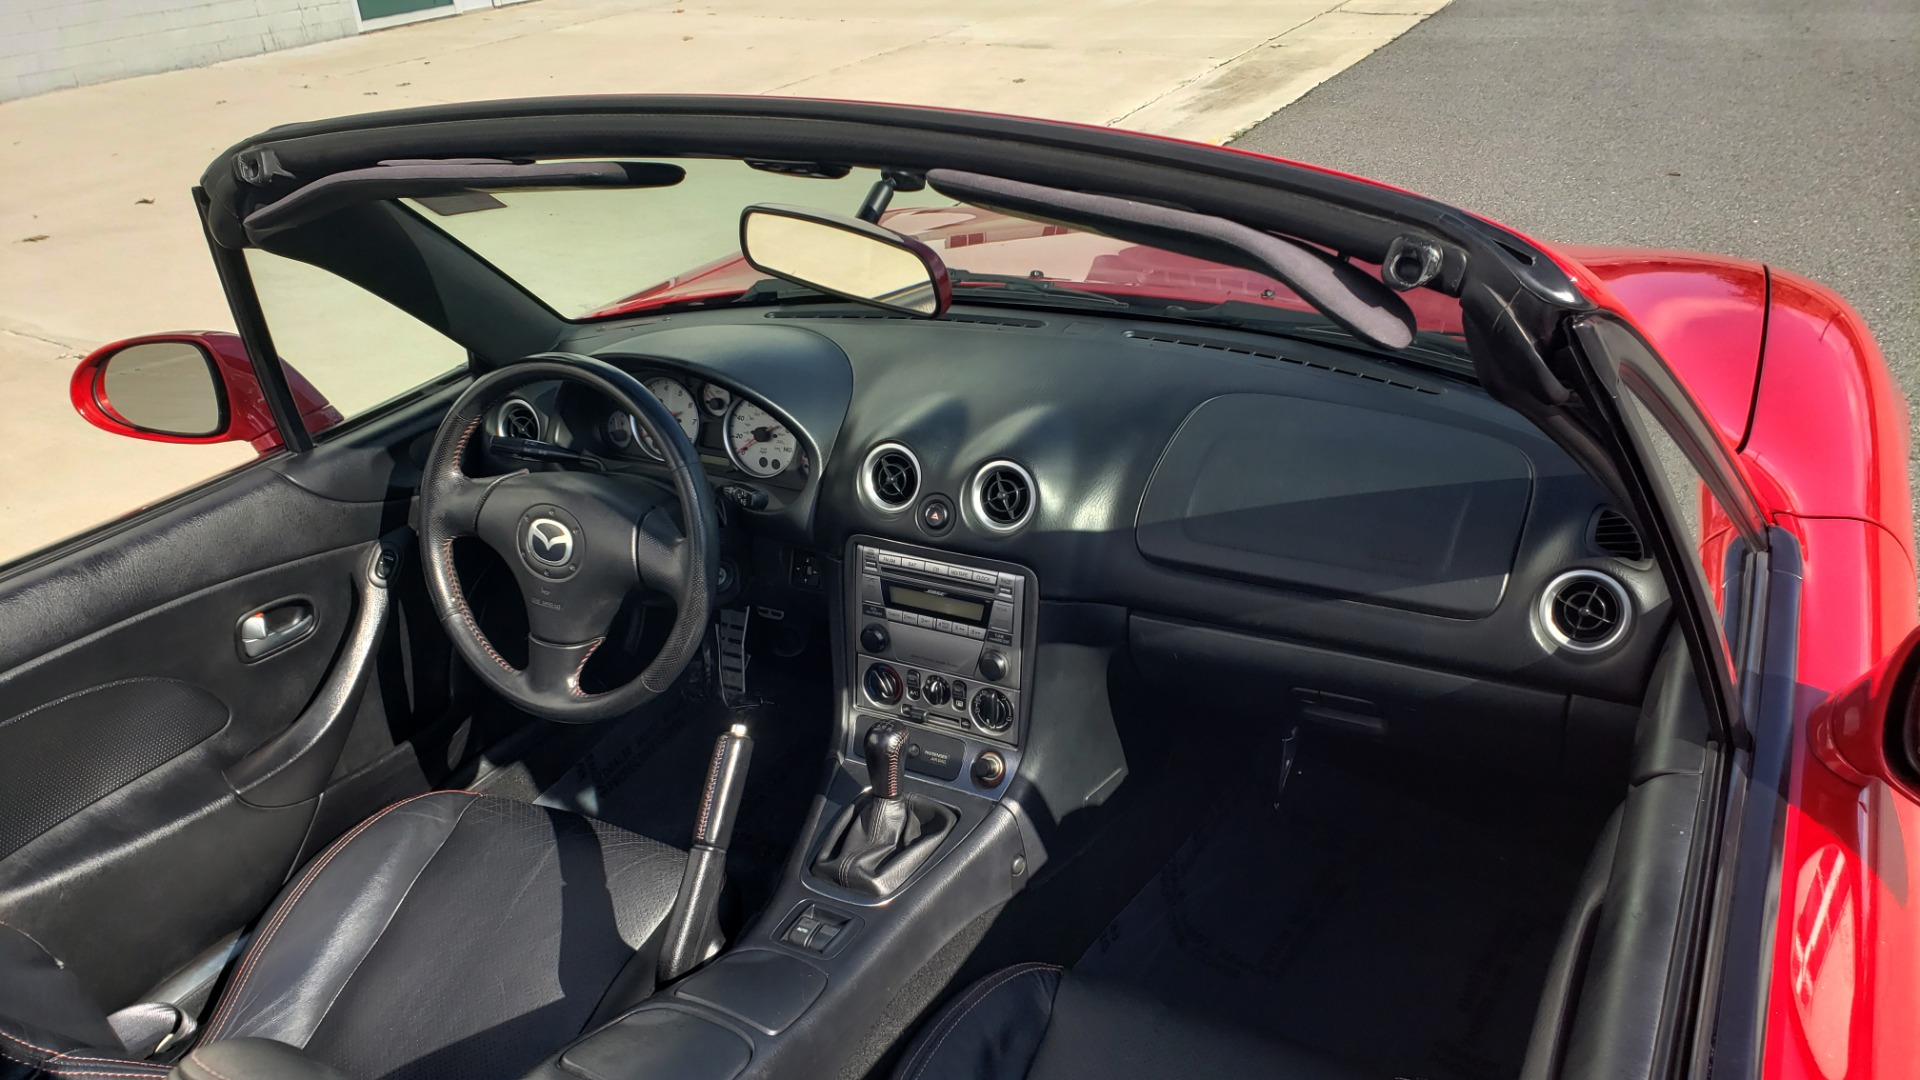 Used 2004 Mazda MX-5 MIATA 2DR CONVERTIBLE MAZDASPEED / GRAND TOURING PKG for sale Sold at Formula Imports in Charlotte NC 28227 45